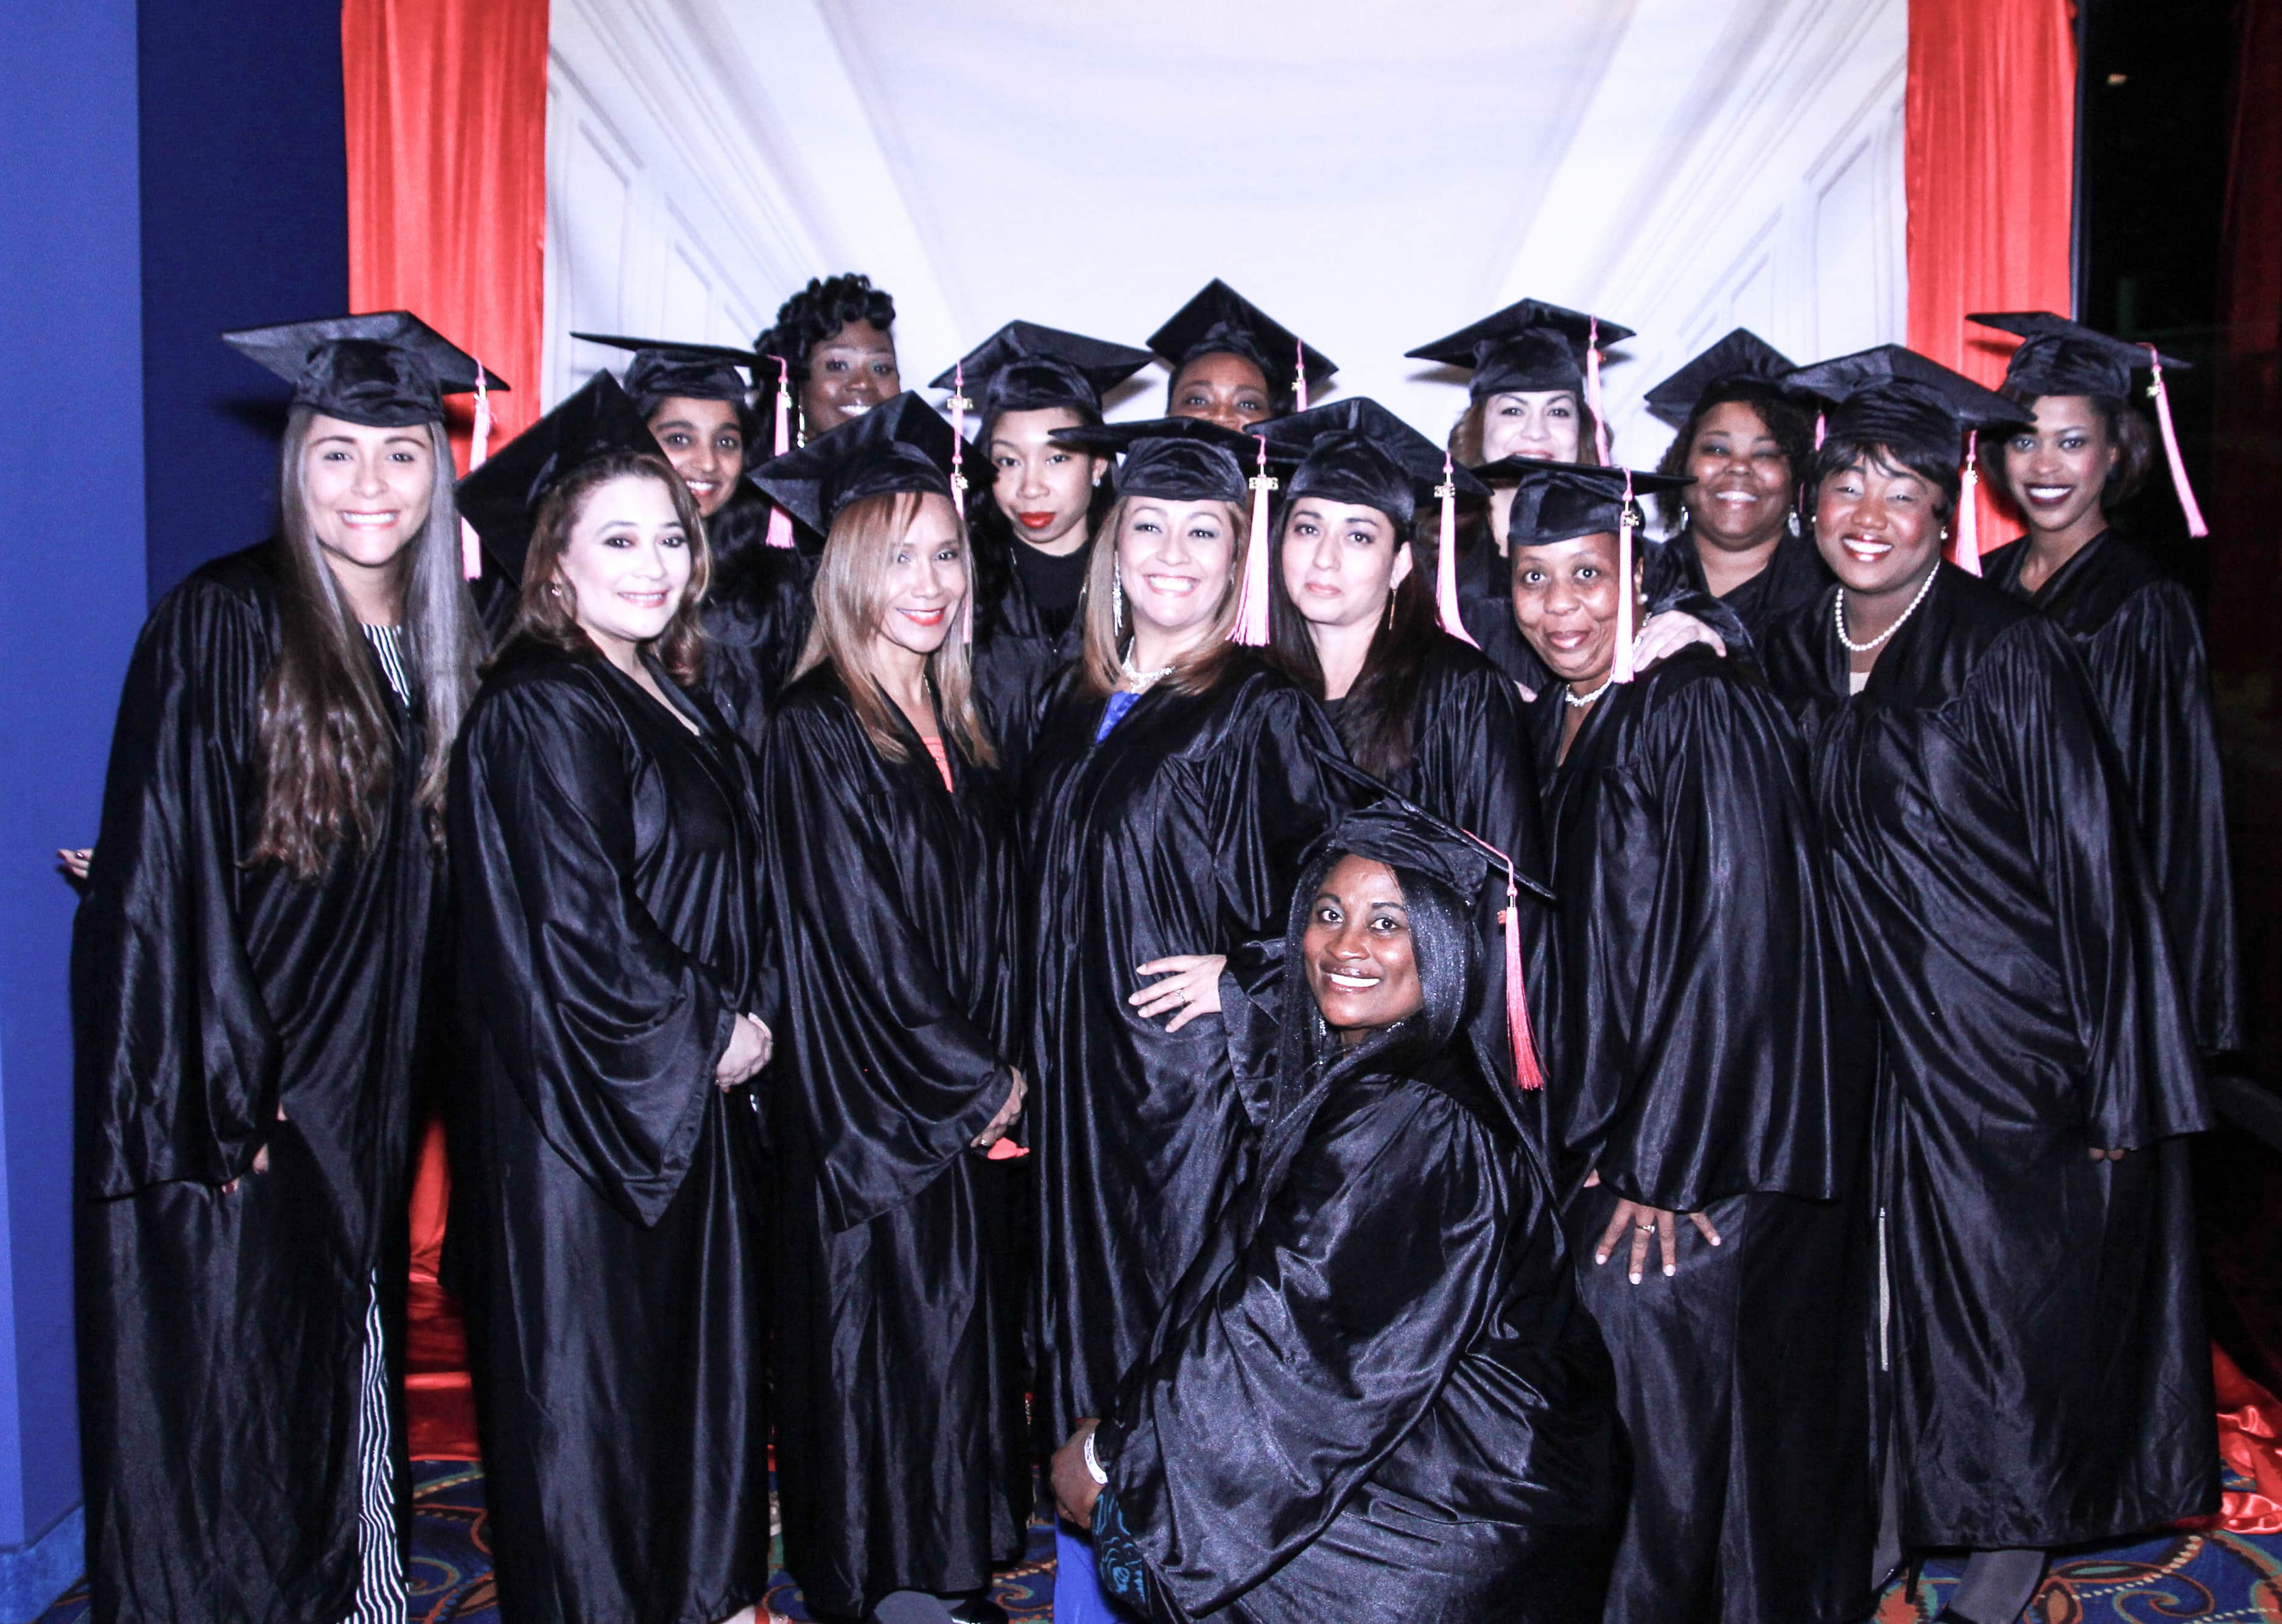 event decorating academy graduation pictures